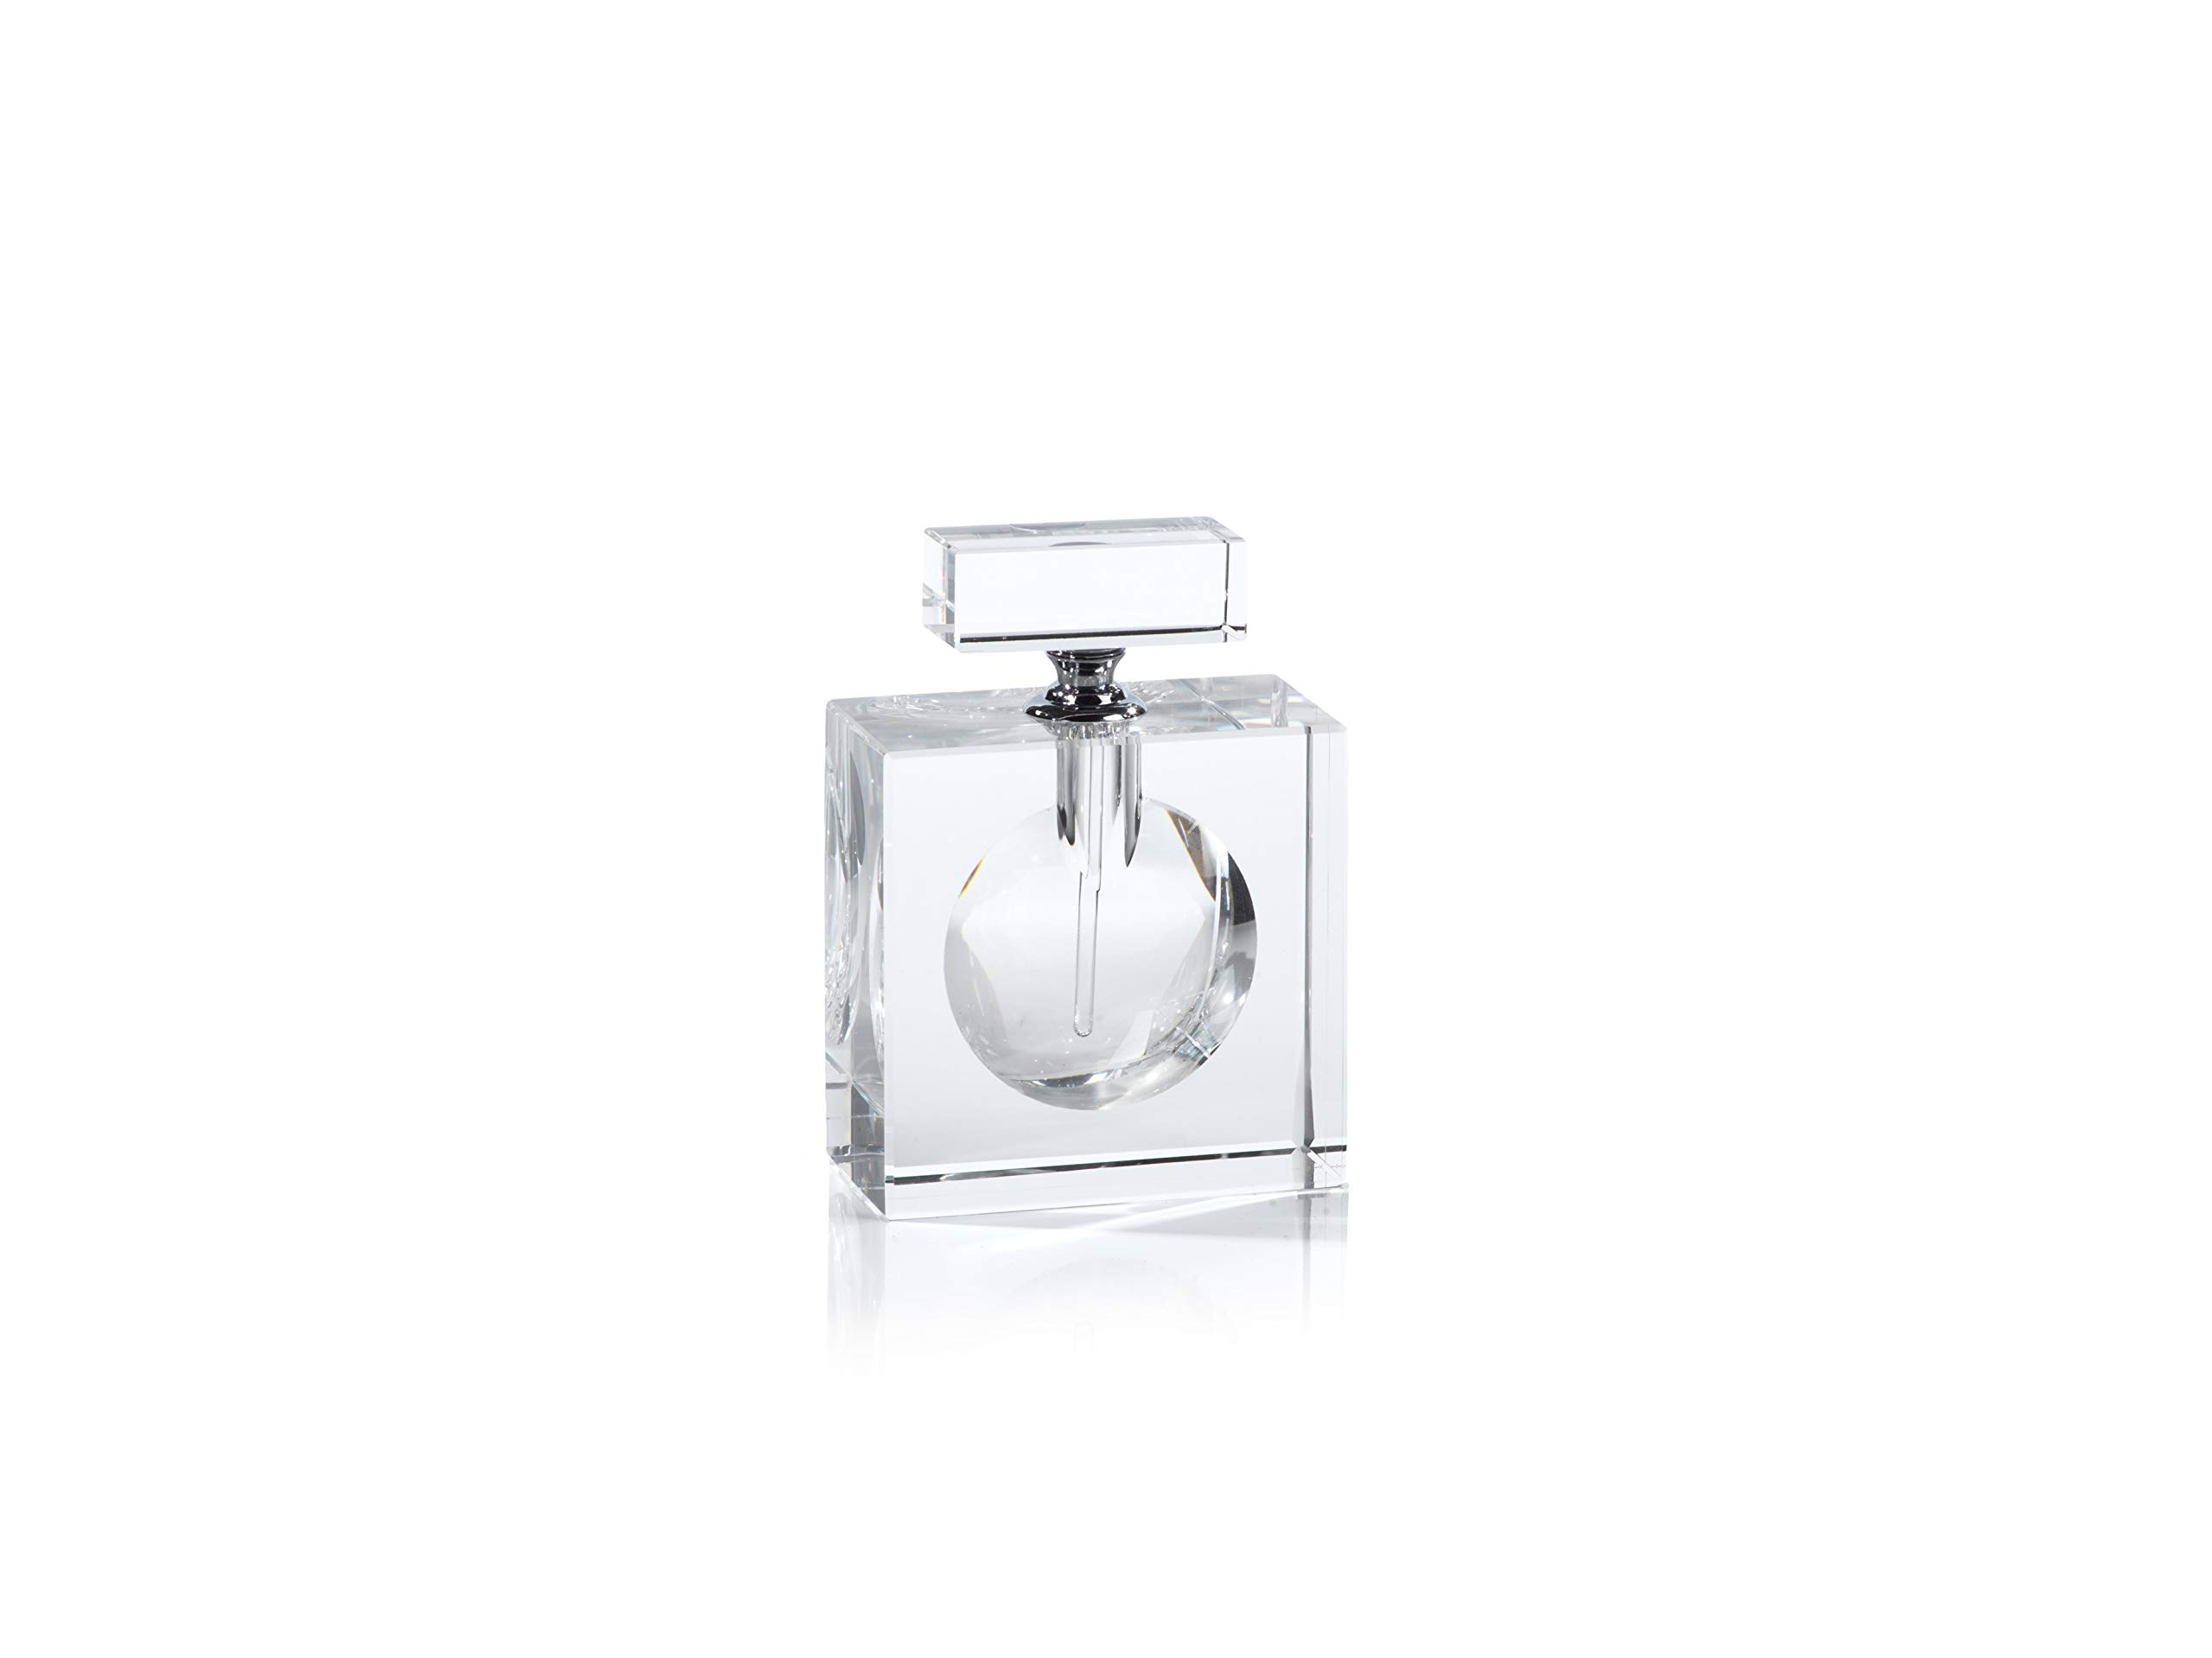 Zodax Malak Rectangular Glass Perfume Decorative Bottle, Clear